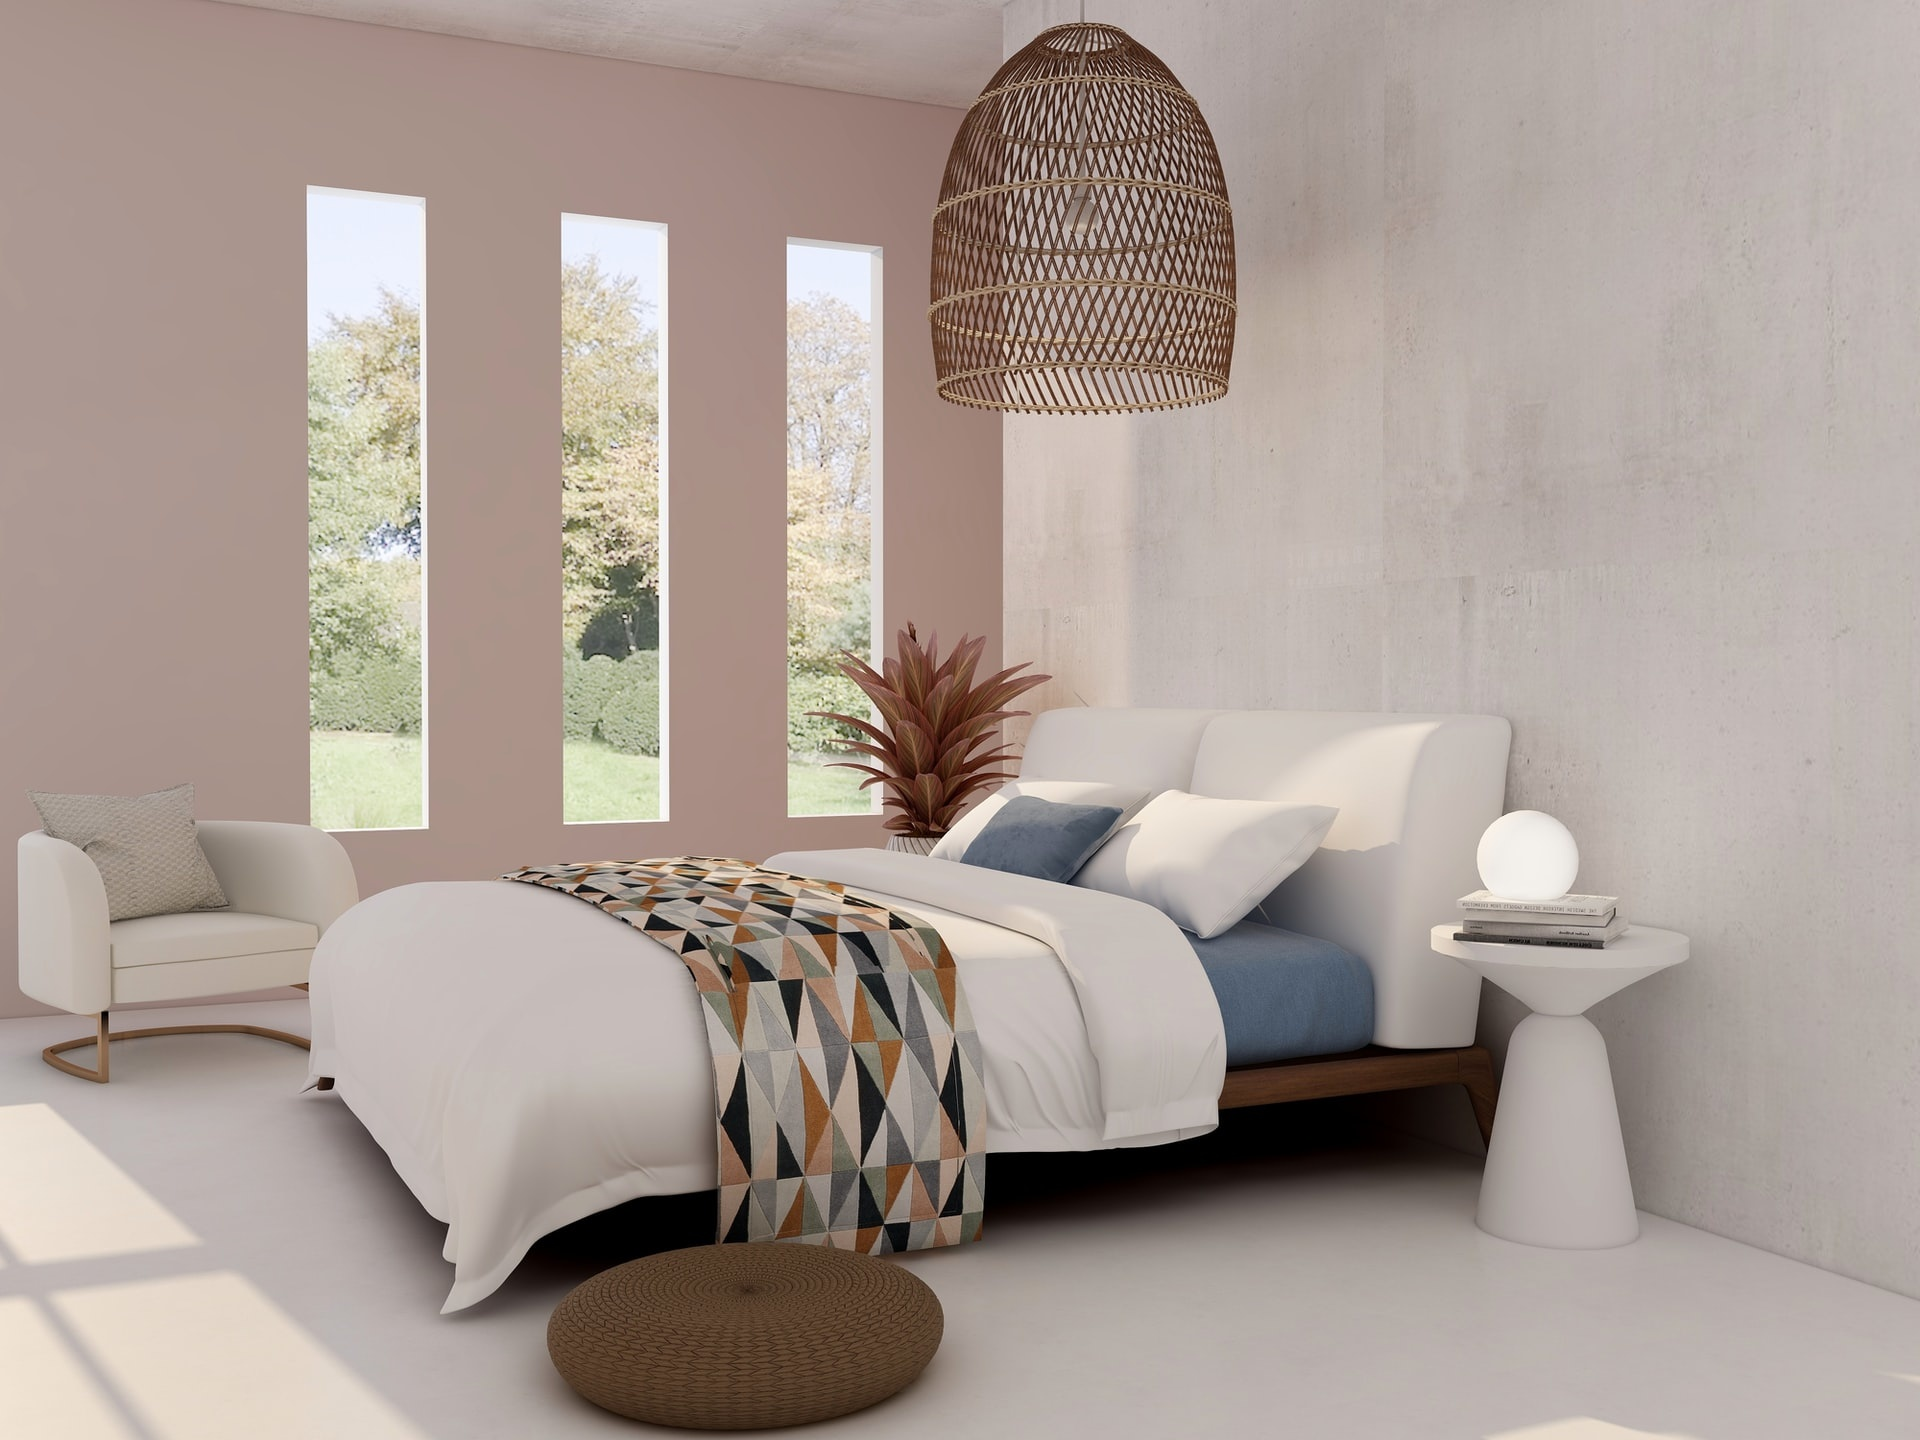 Boho Chic Bedrooms – 10 Examples